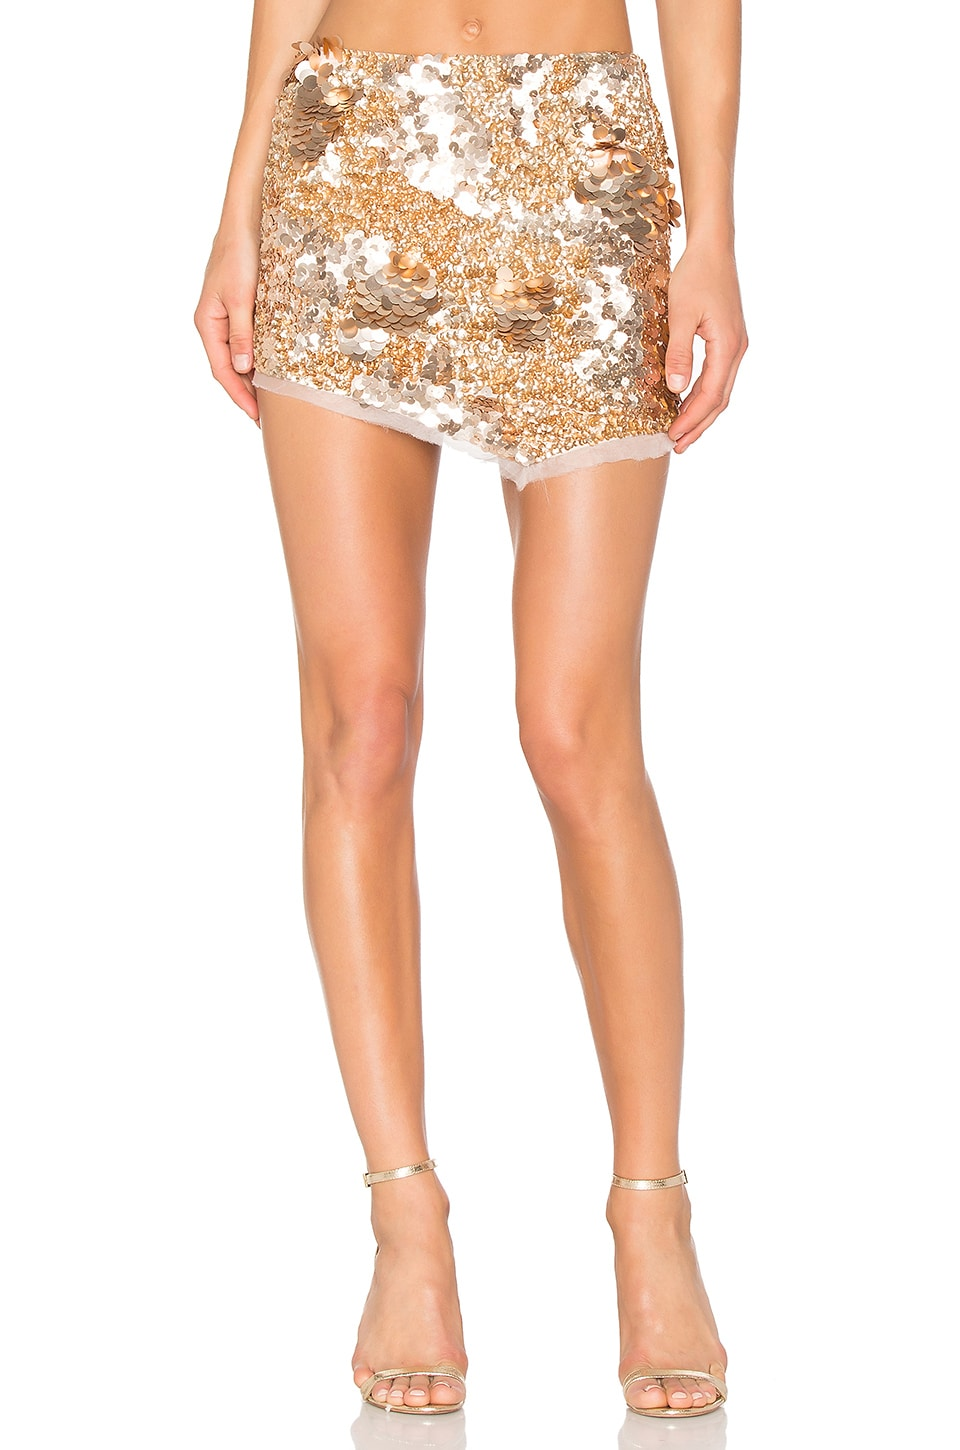 Aje Jaws Sequin Mini Skirt in Rose Gold